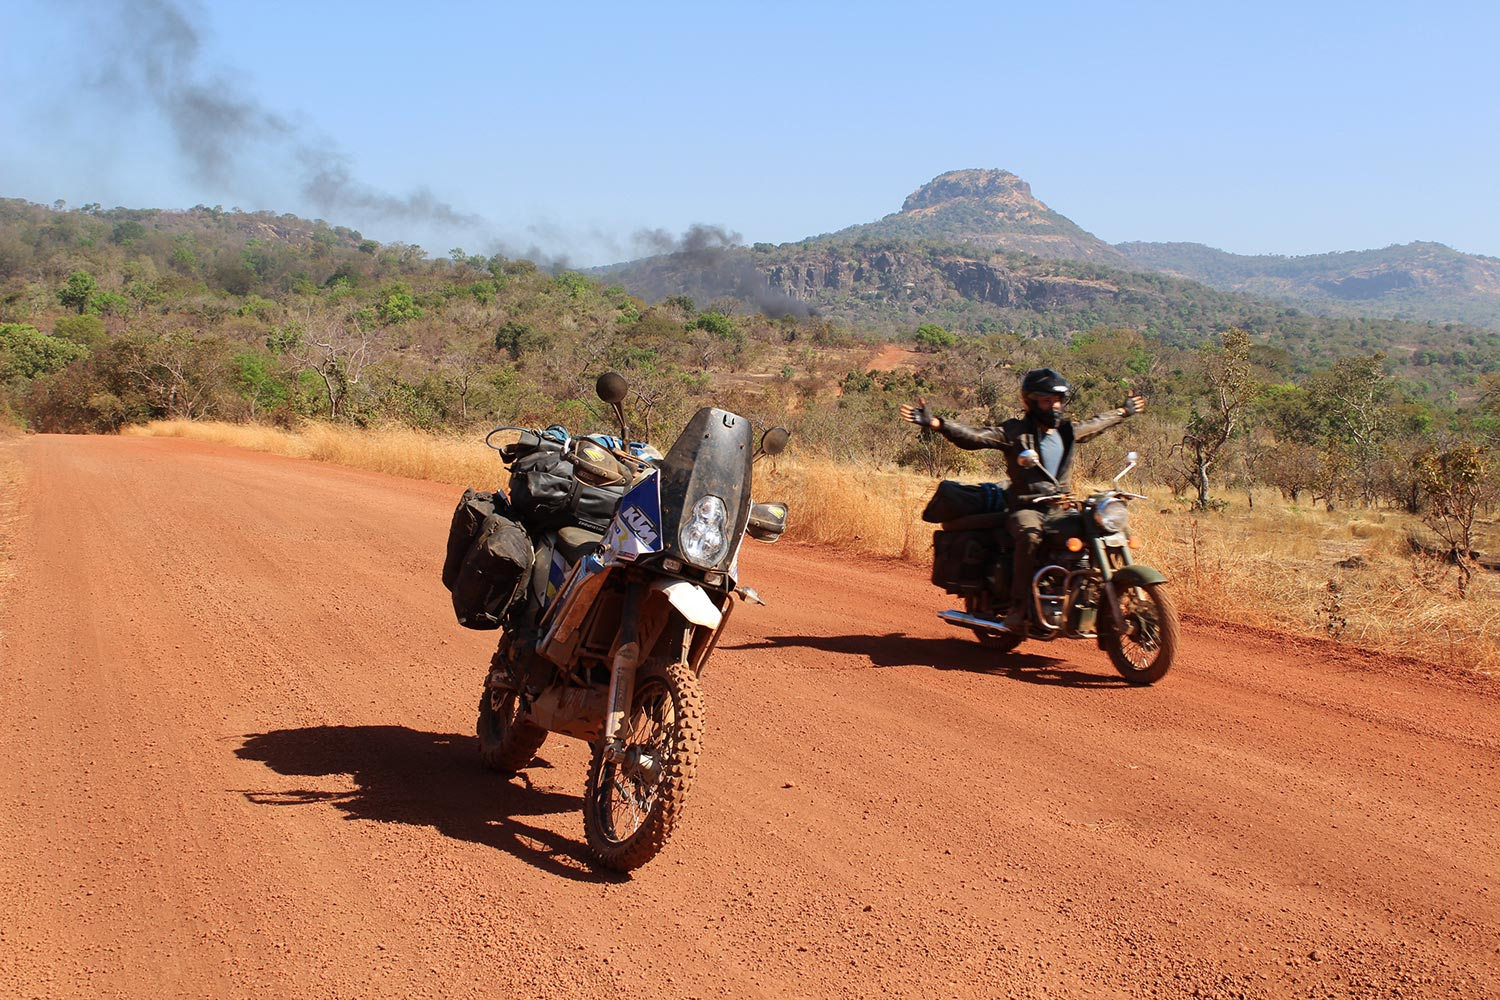 west africa motorcycle ride